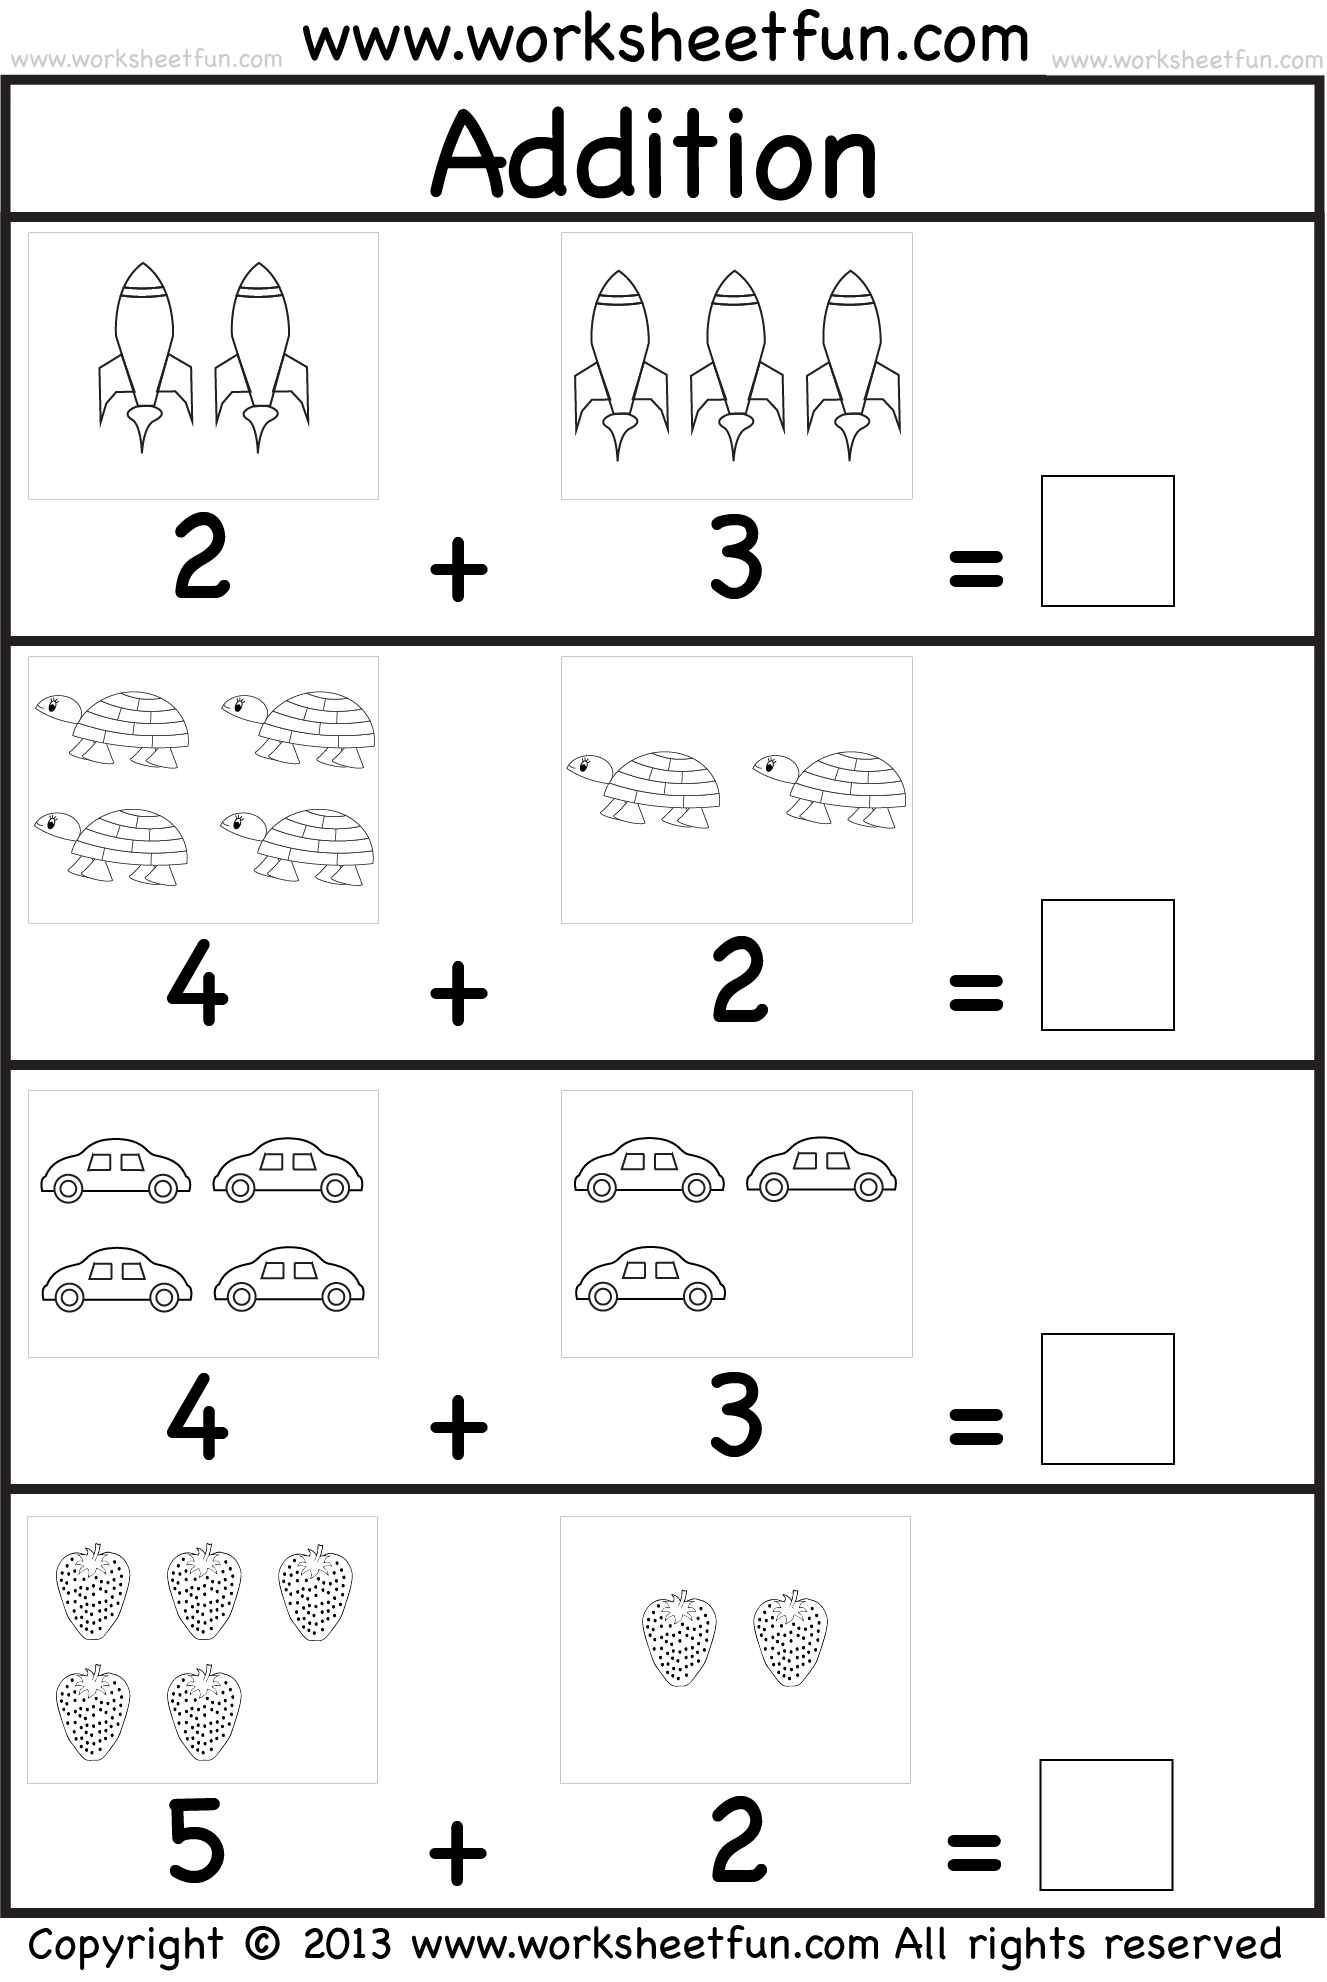 Uncategorized Free Kindergarten Math Worksheets addition worksheet this site has great free worksheets for everything from abcs to math